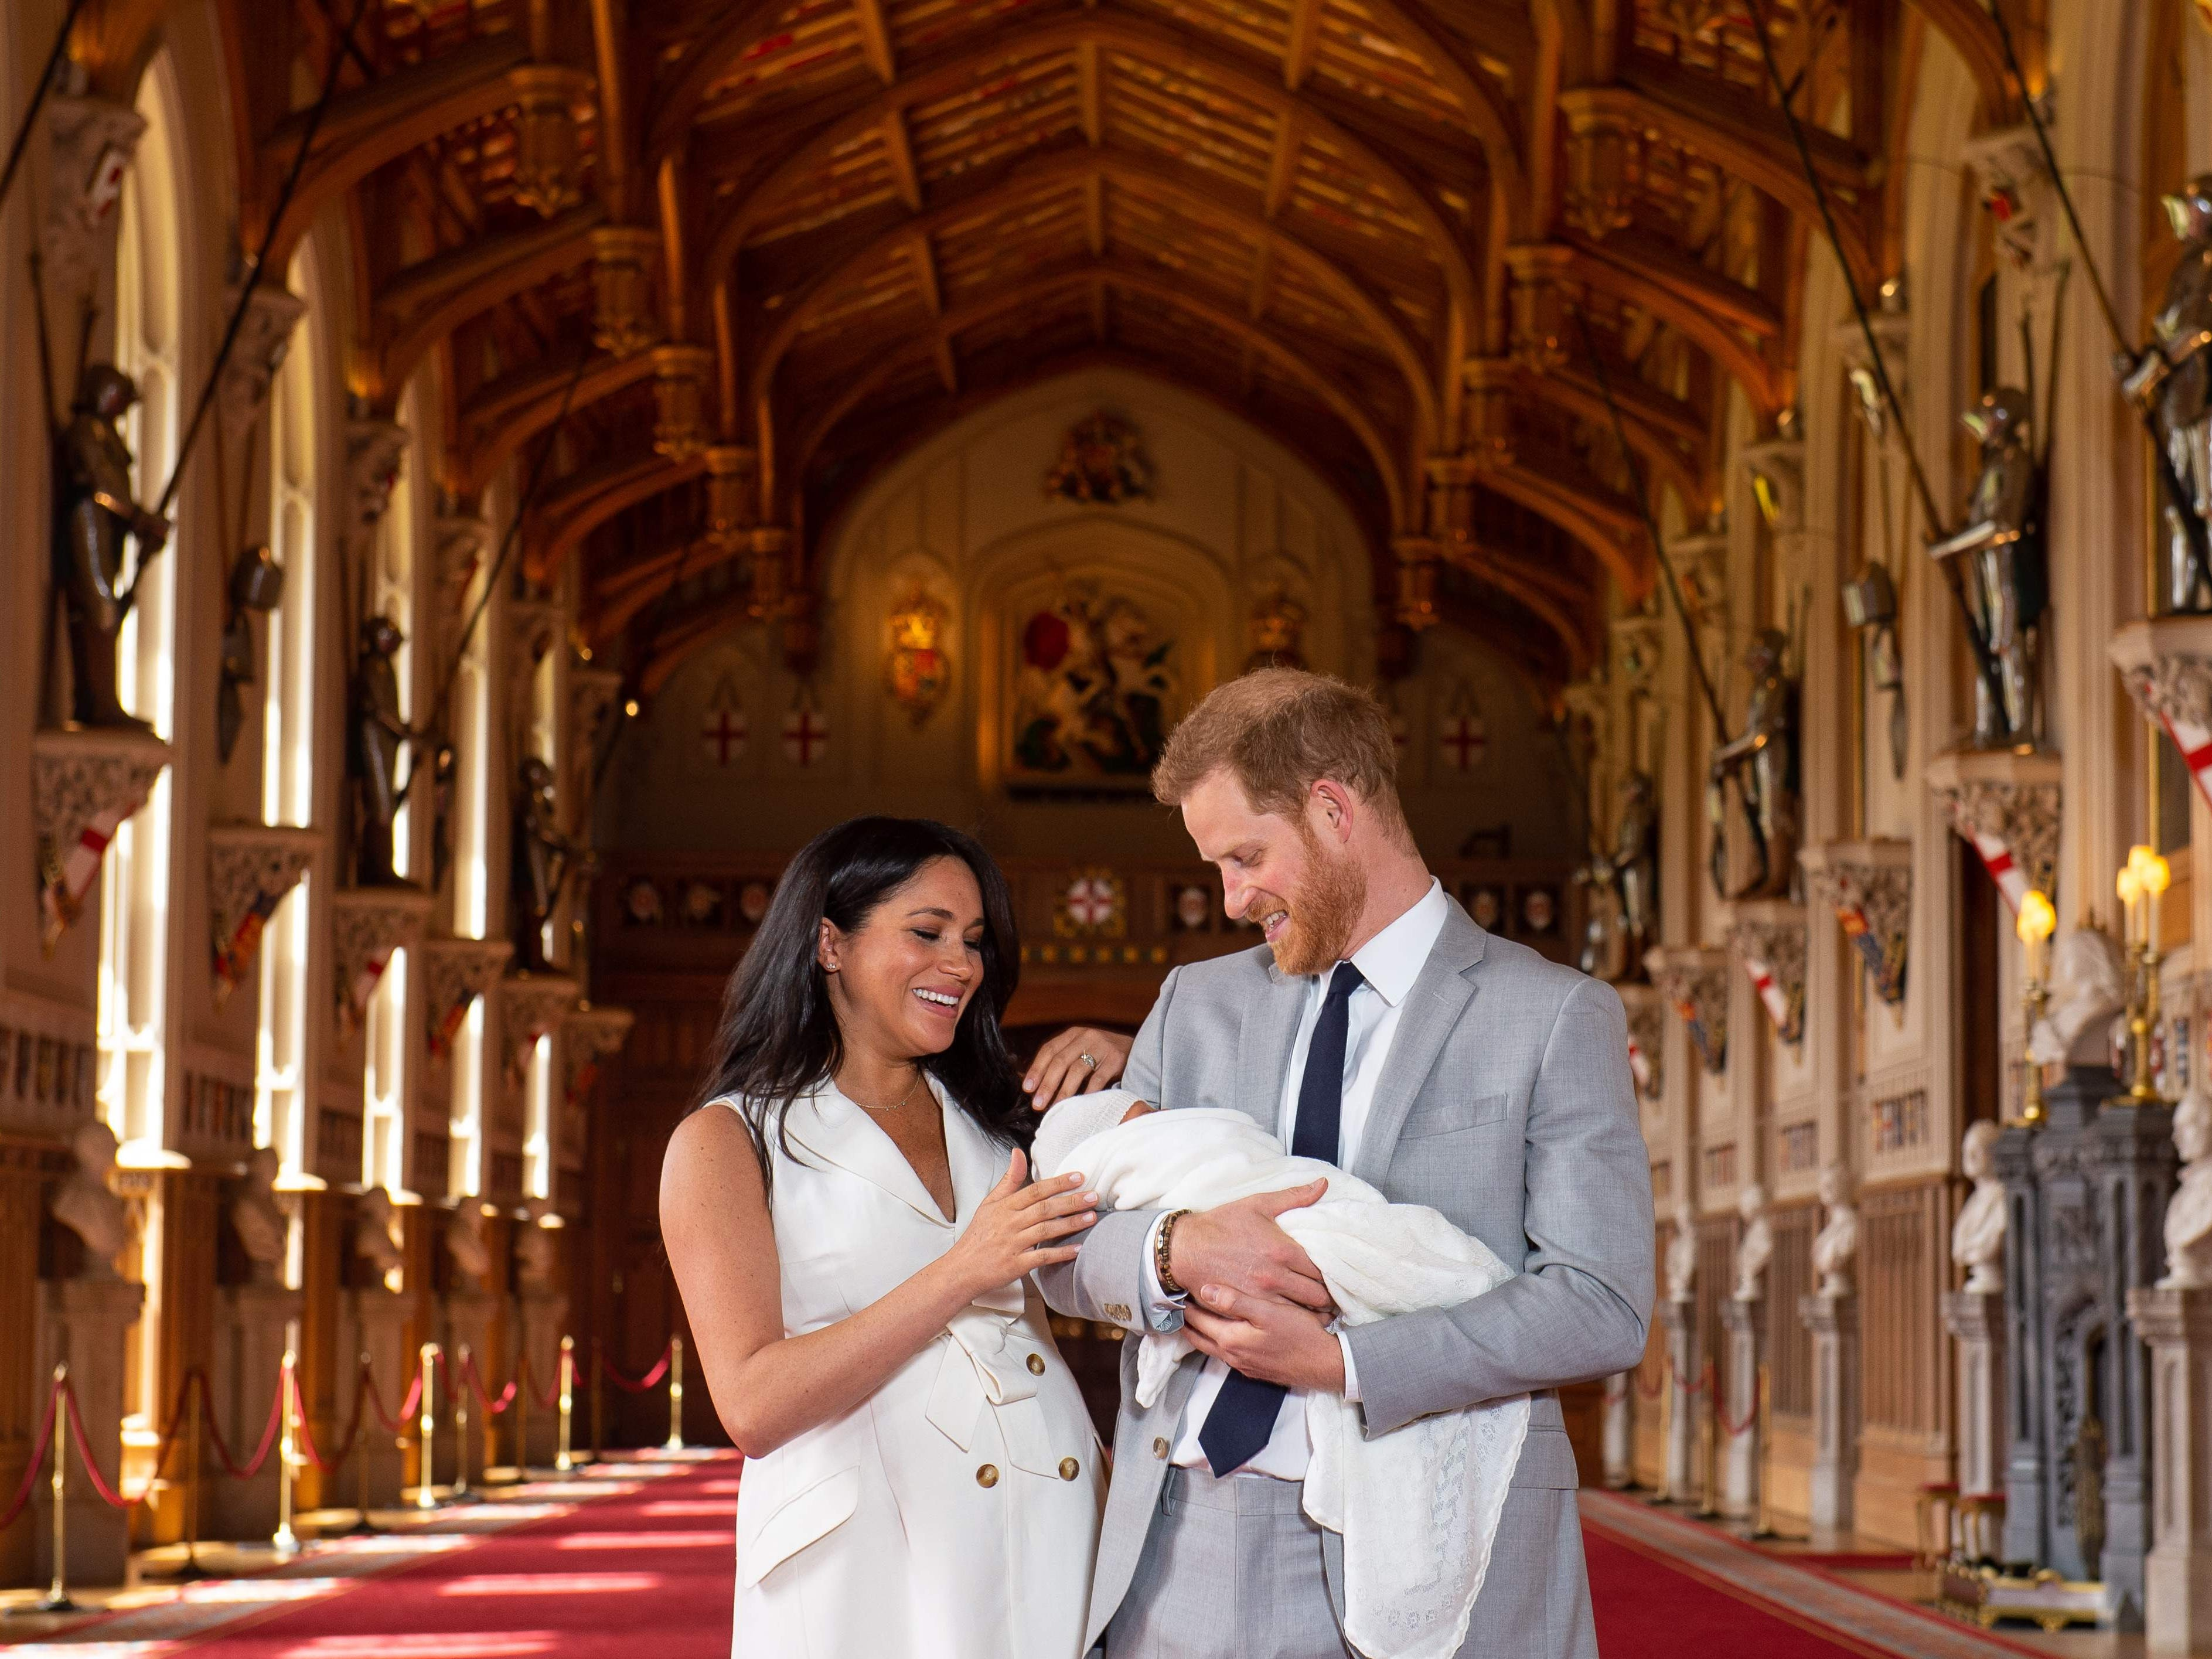 Britain's Prince Harry, Duke of Sussex (R), and his wife Meghan, Duchess of Sussex, pose for a photo with their newborn baby son in St George's Hall at Windsor Castle in Windsor, west of London on May 8, 2019. (Photo by Dominic Lipinski / POOL / AFP)DOMINIC LIPINSKI/AFP/Getty Images ORIG FILE ID: AFP_1GA01E